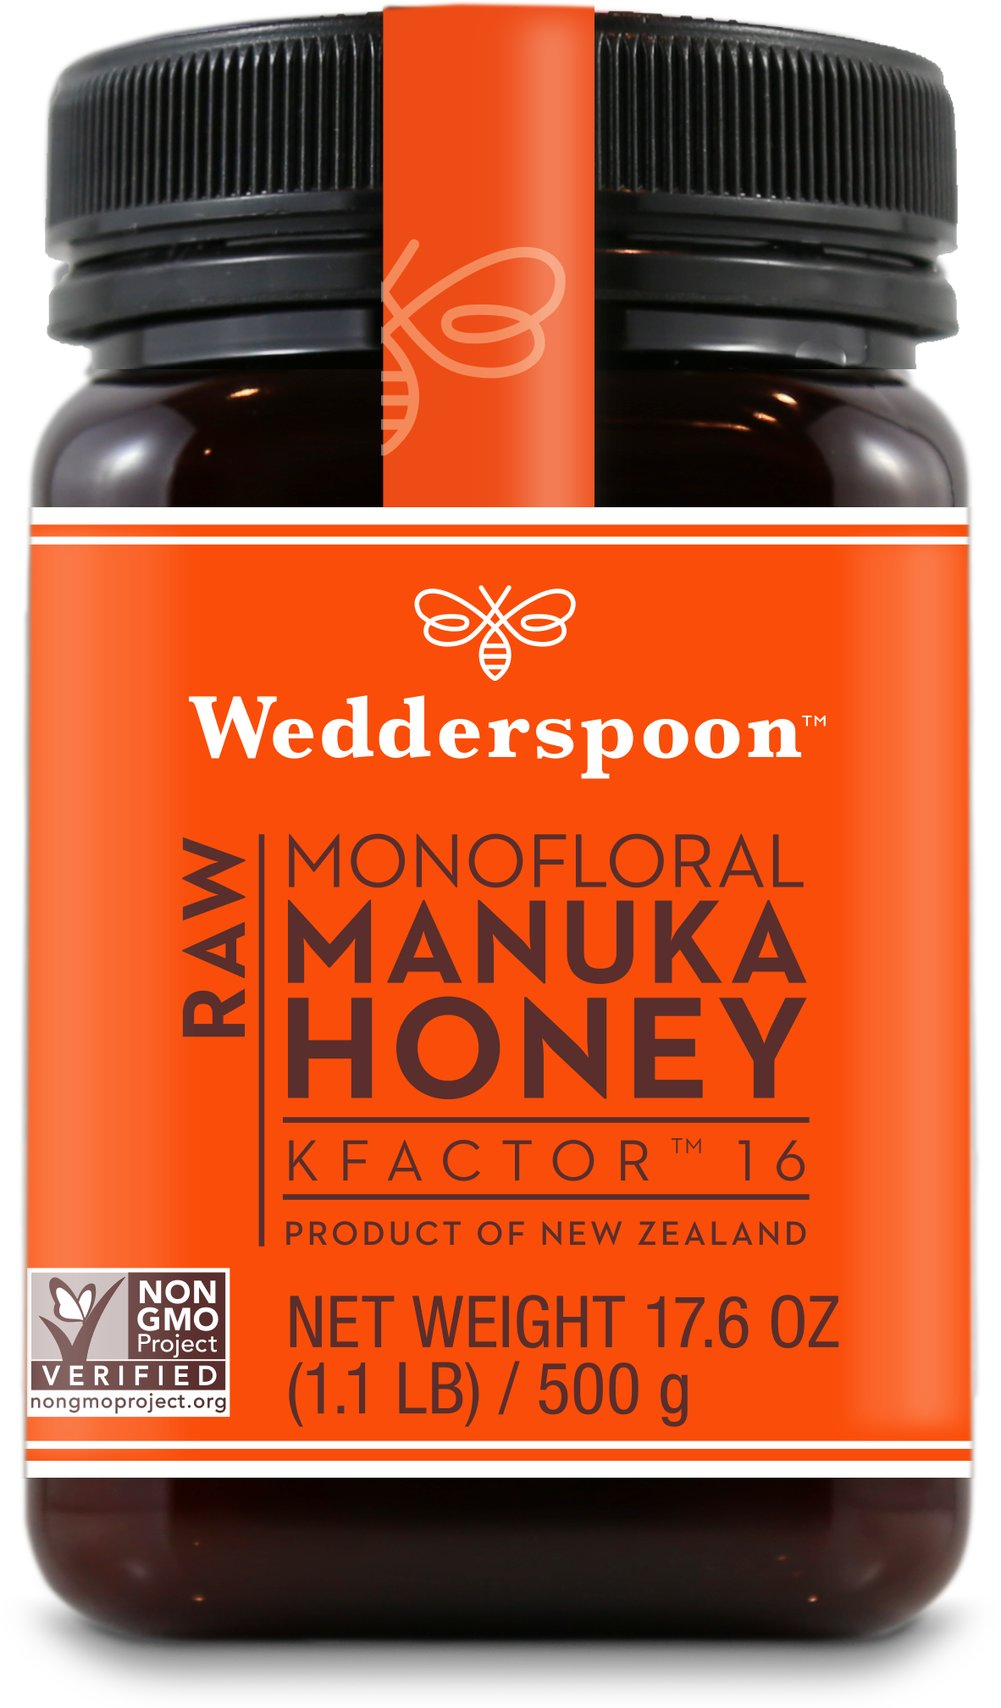 100% Raw Premium Manuka Honey Active 16+ <strong>From the Manufacturer: </strong>100% Raw, unpasteurized authentic Manuka Honey direct from New Zealand. 17.6 oz Jar